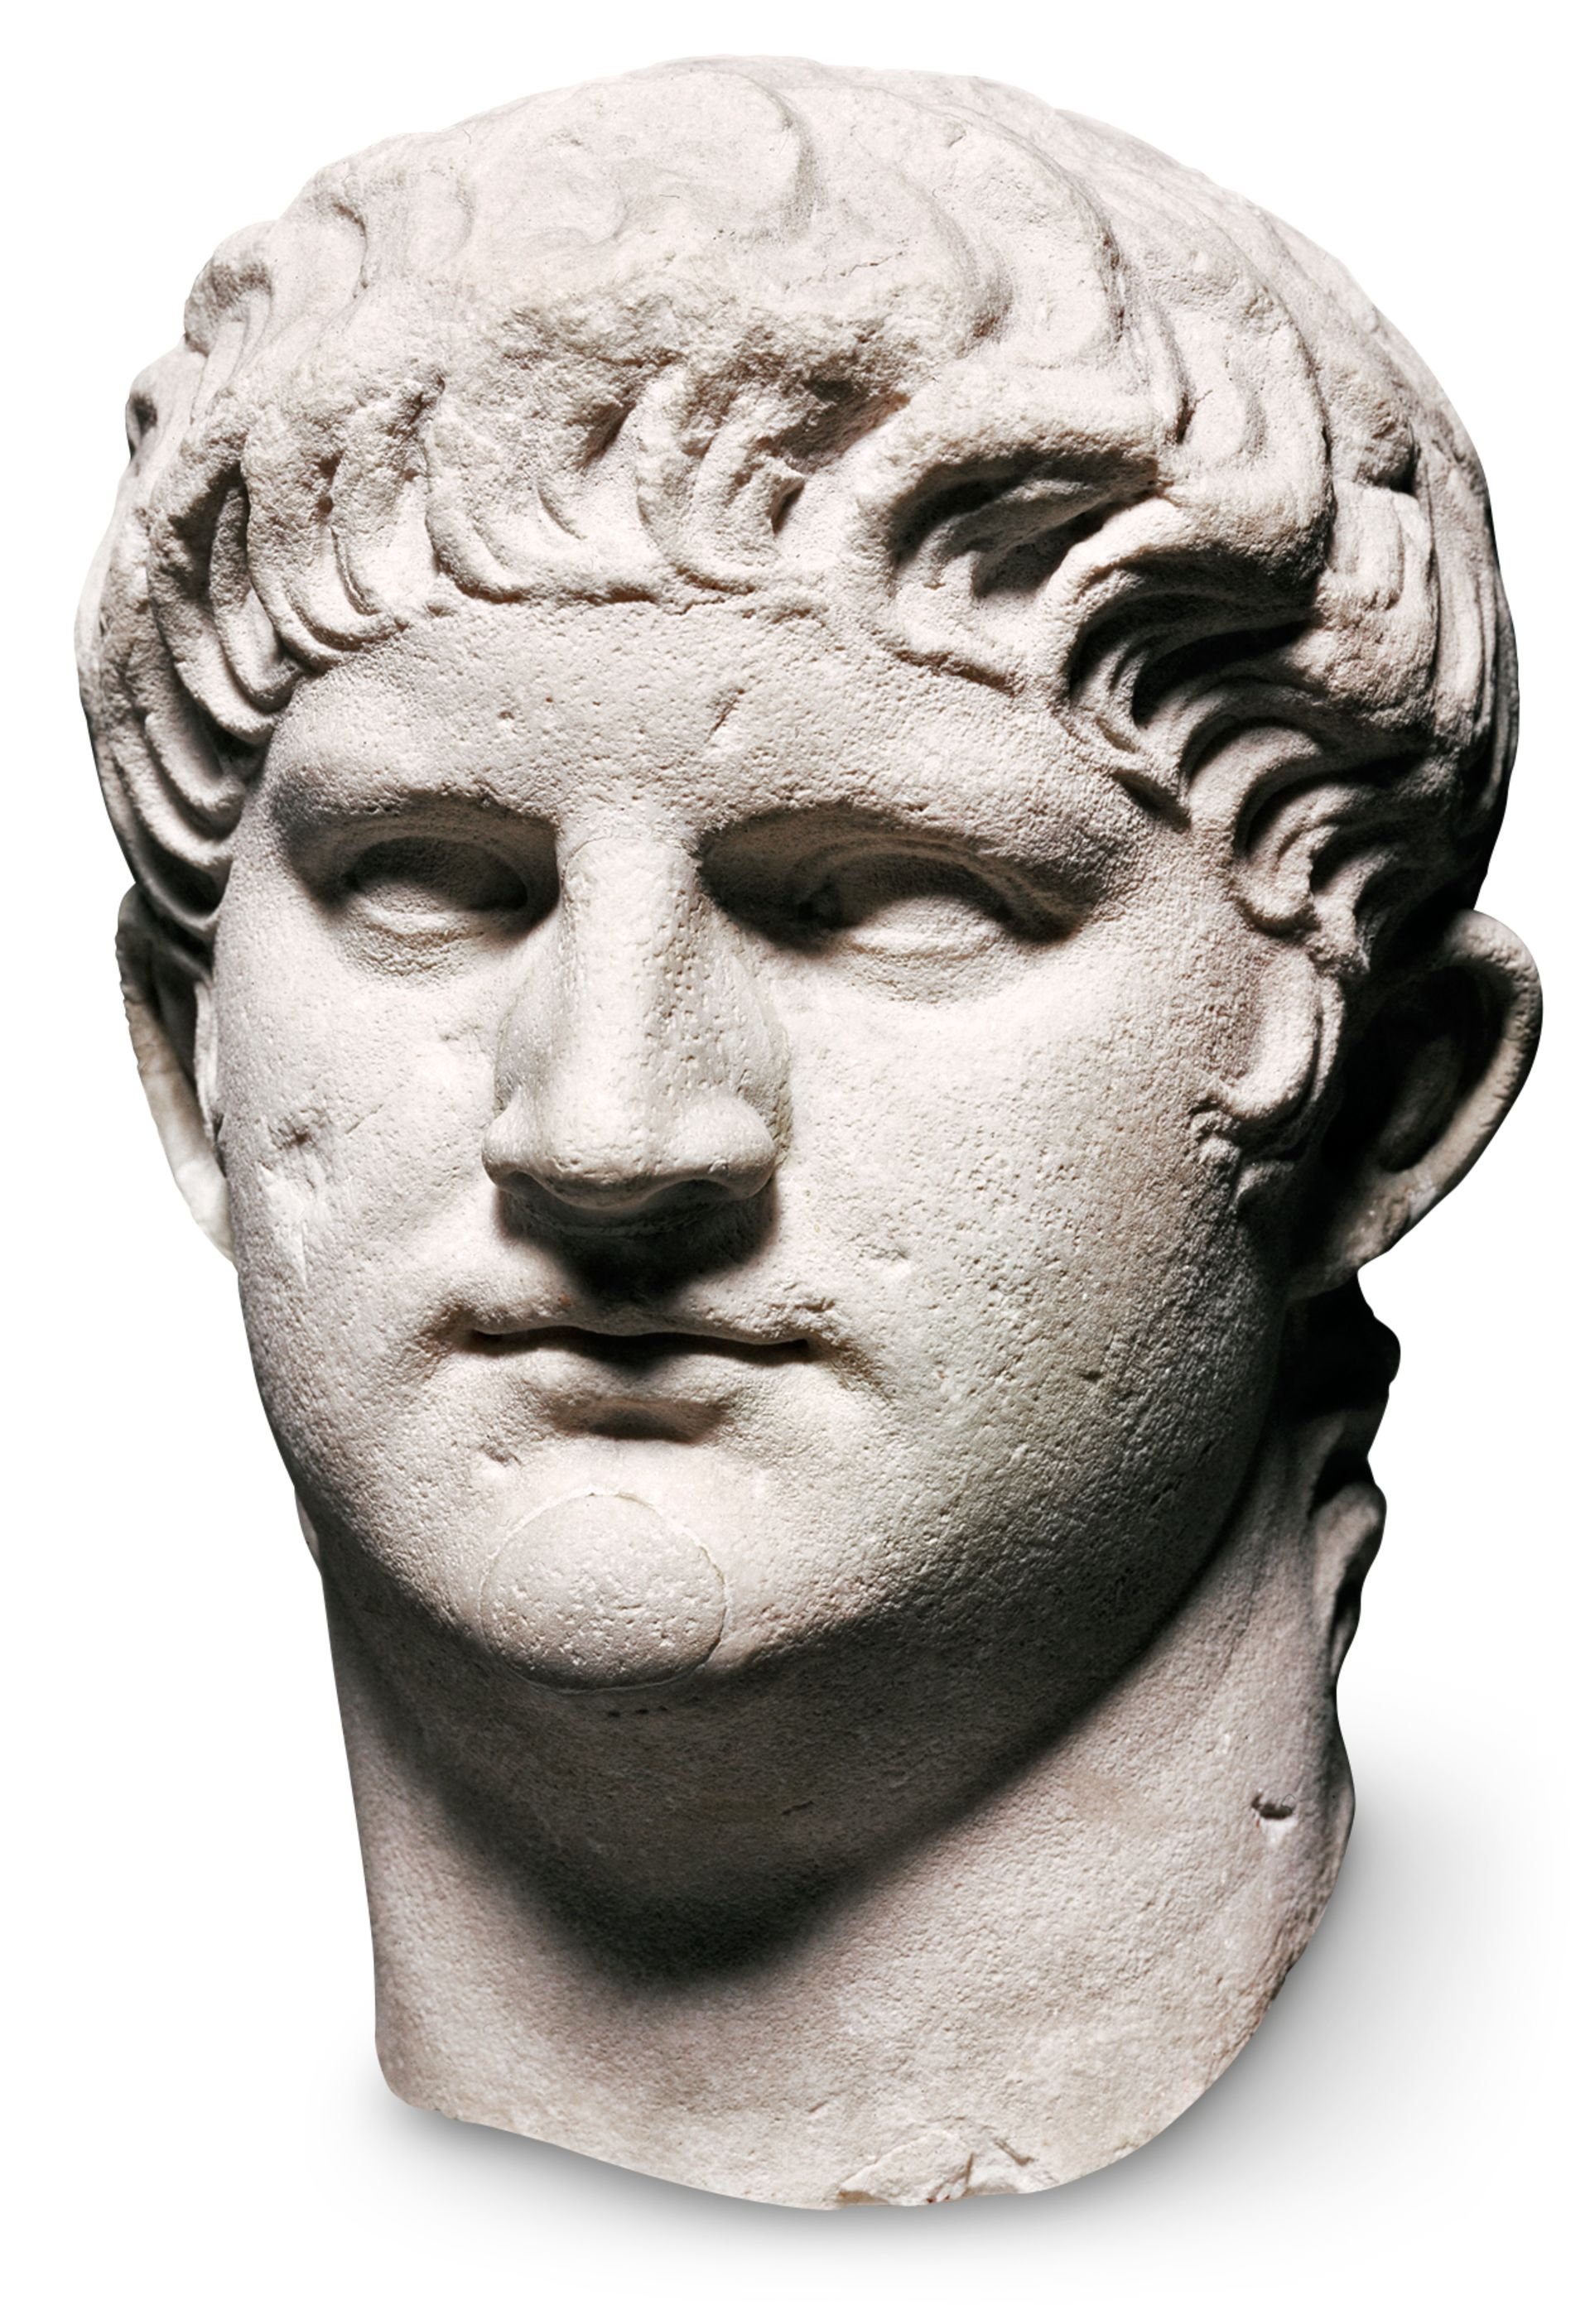 emperor nero Eye witness account of the fire that consumed rome and supposedly set by the emperor nero.